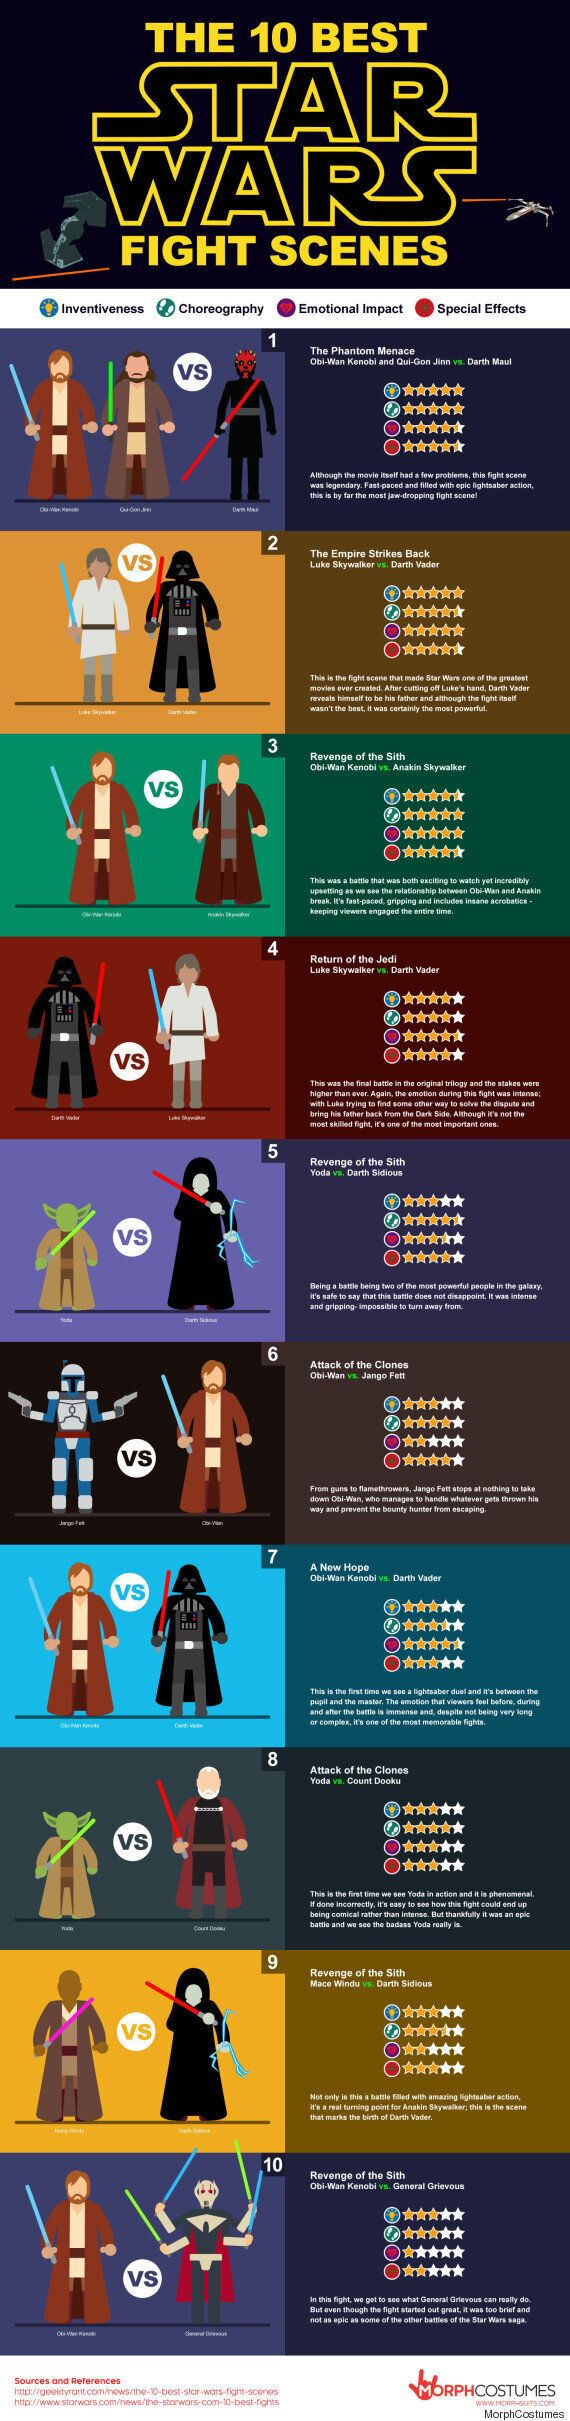 'Star Wars: The Force Awakens' Is On Its Way... But What's The Greatest Star Wars Battle Scene So